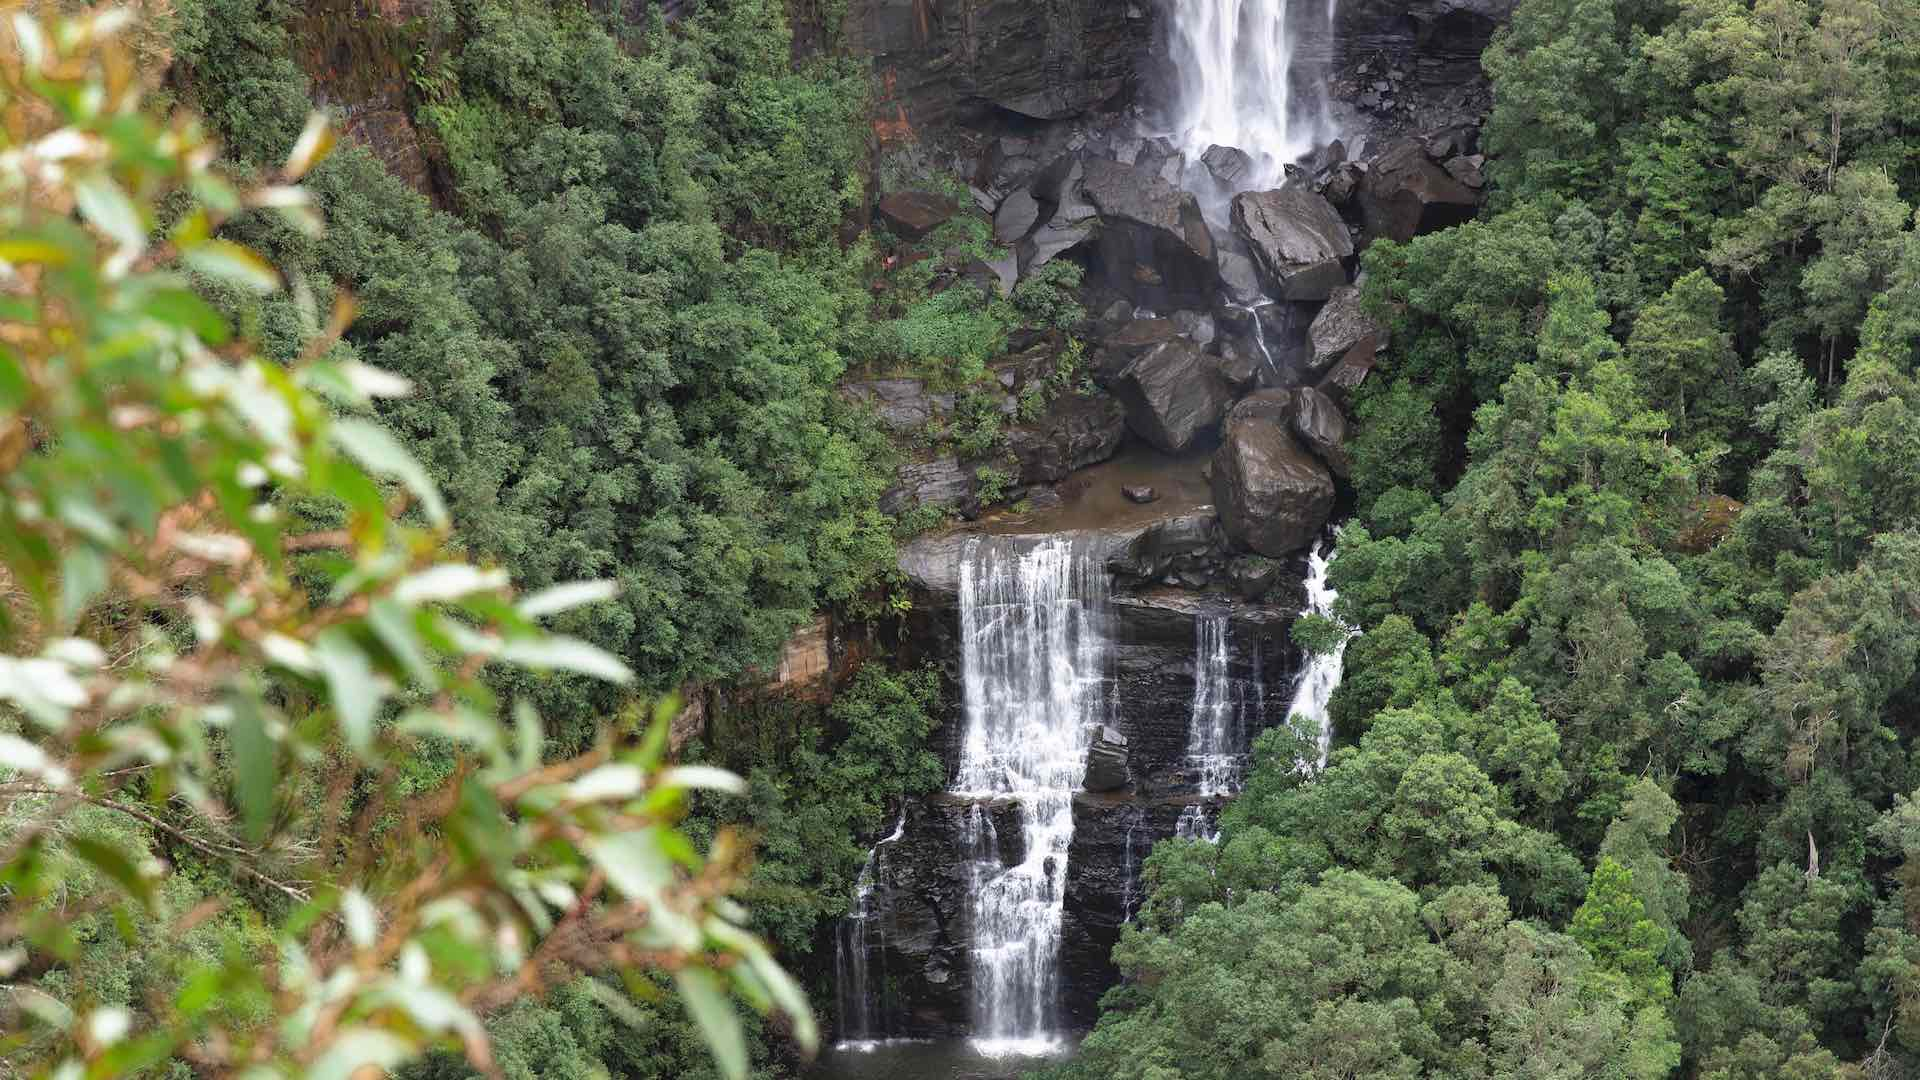 How to Spend 48 Hours in Kangaroo Valley